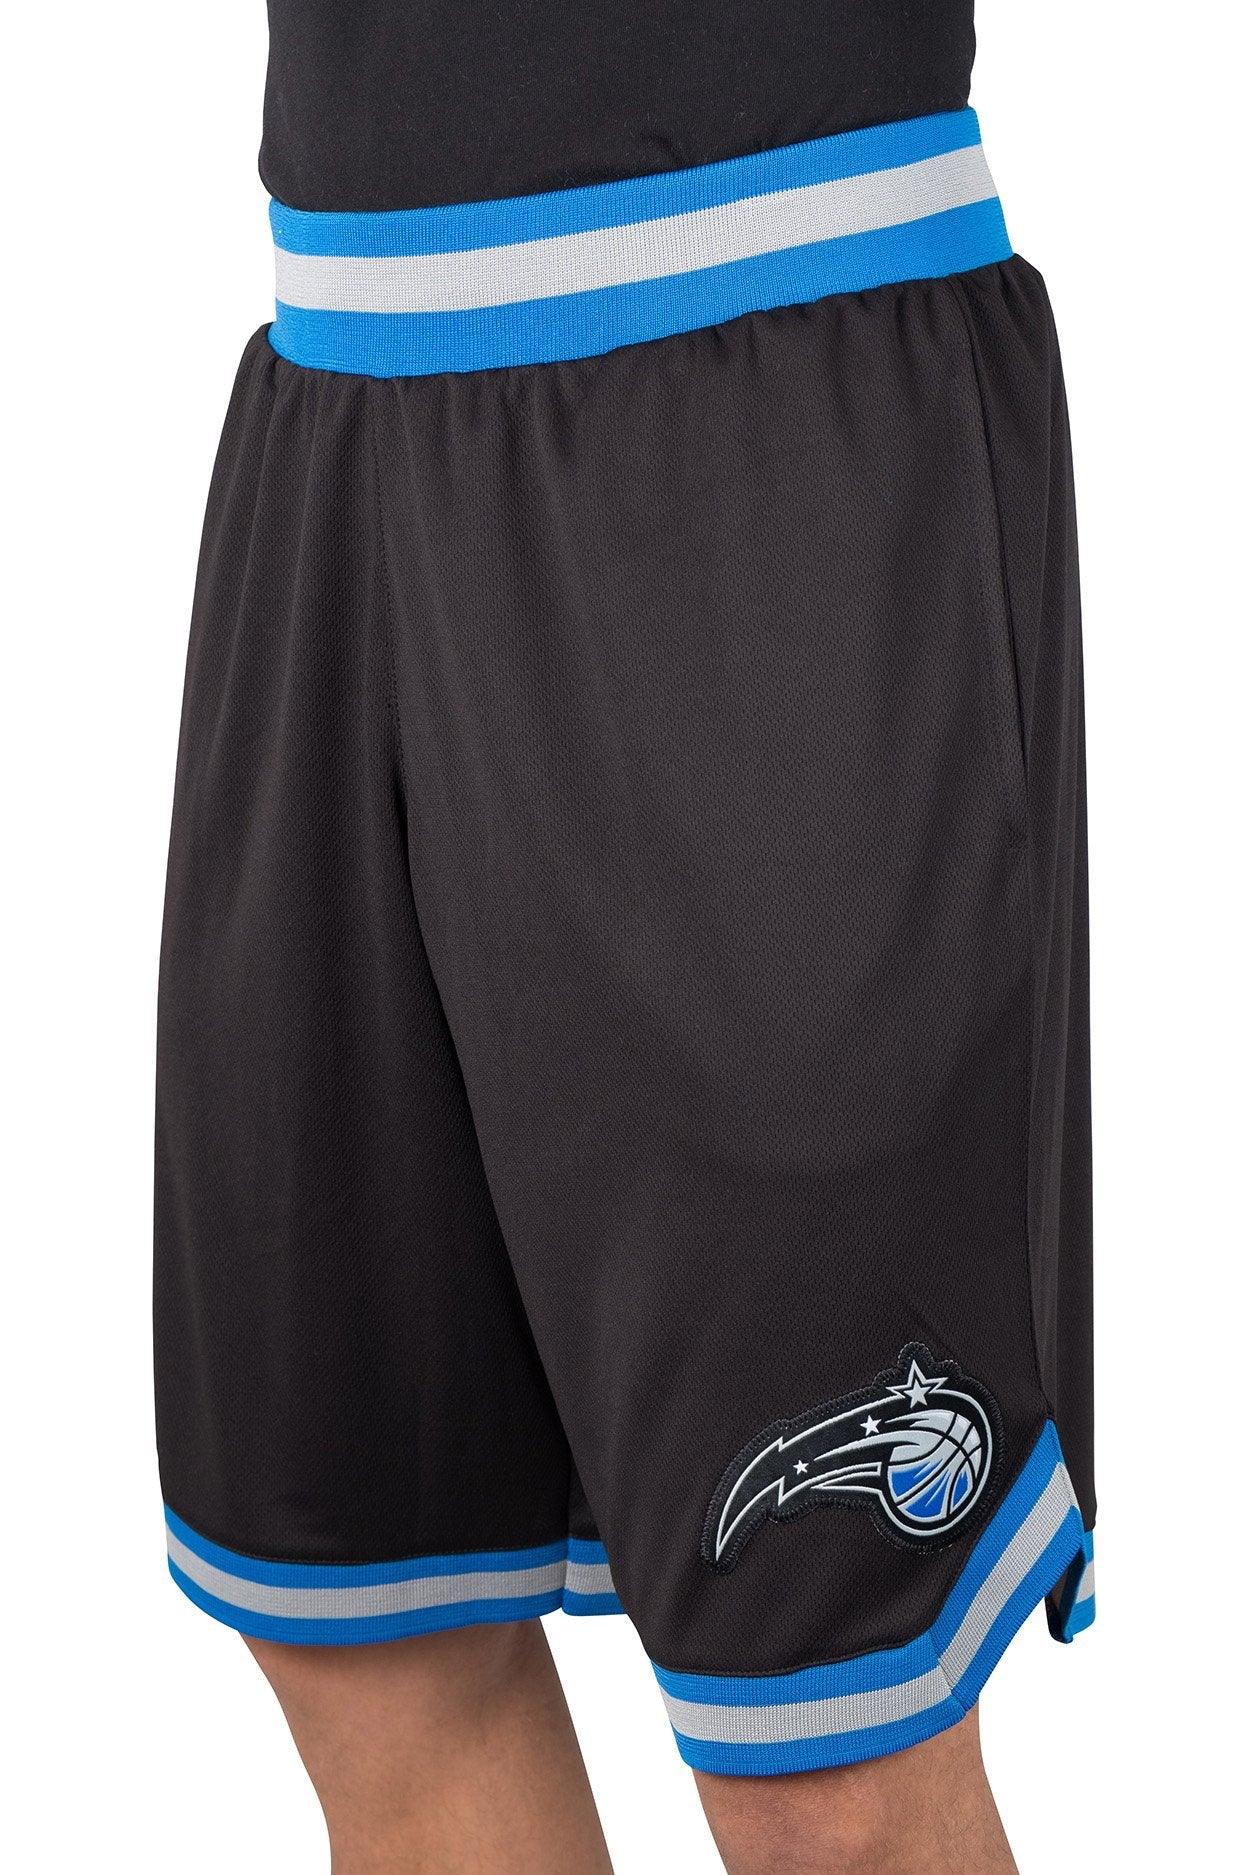 NBA Orlando Magic Men's Basketball Shorts|Orlando Magic